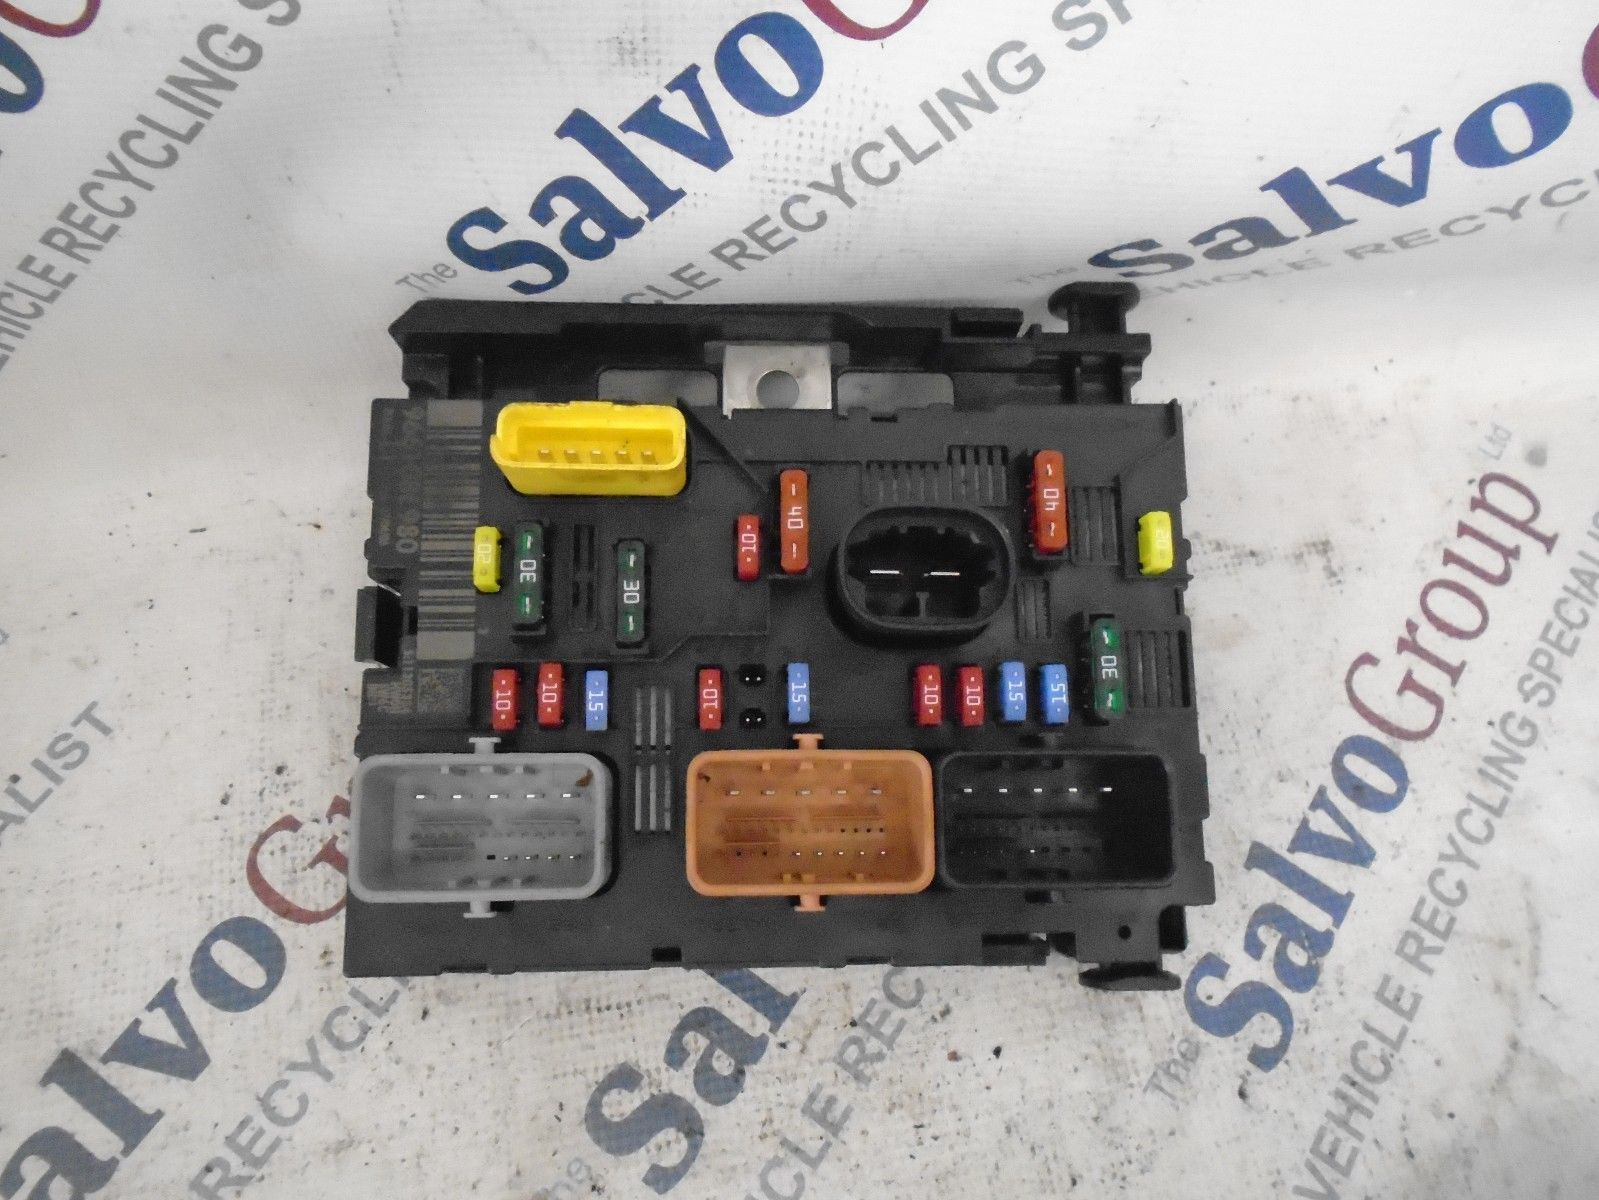 Peugeot 307 Fuse Box For Sale : Peugeot fuse box headlight wiring library